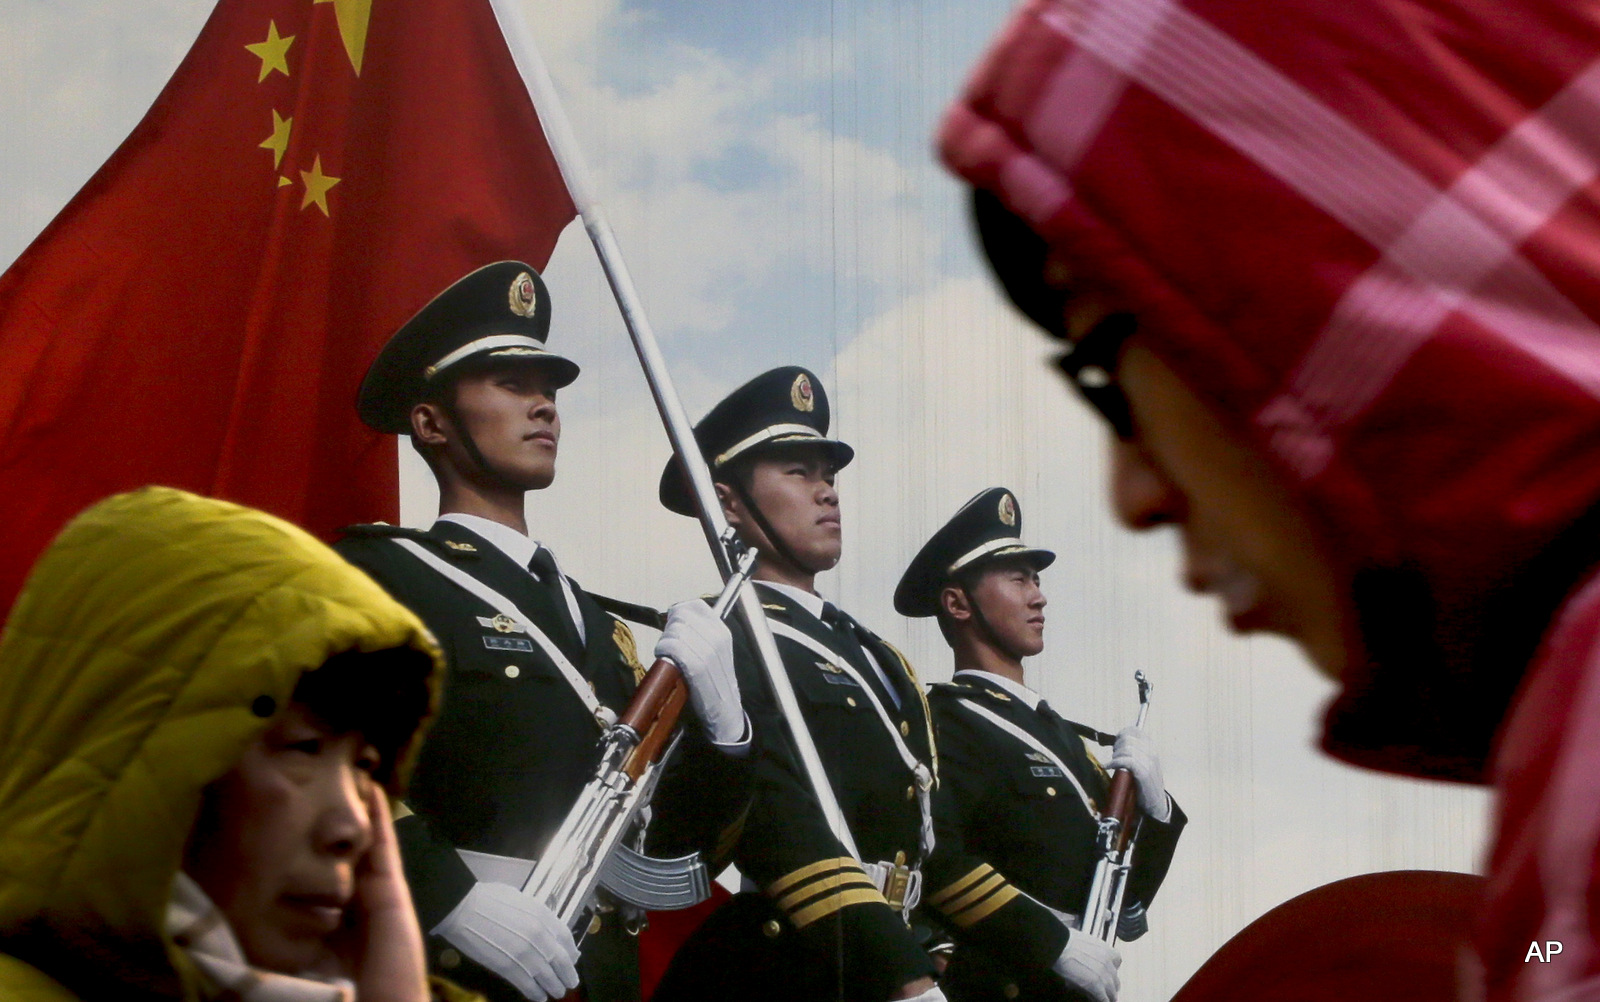 People walk past a poster of Chinese People's Liberation Army (PLA) soldiers on display in Beijing, Thursday, Jan. 21, 2016